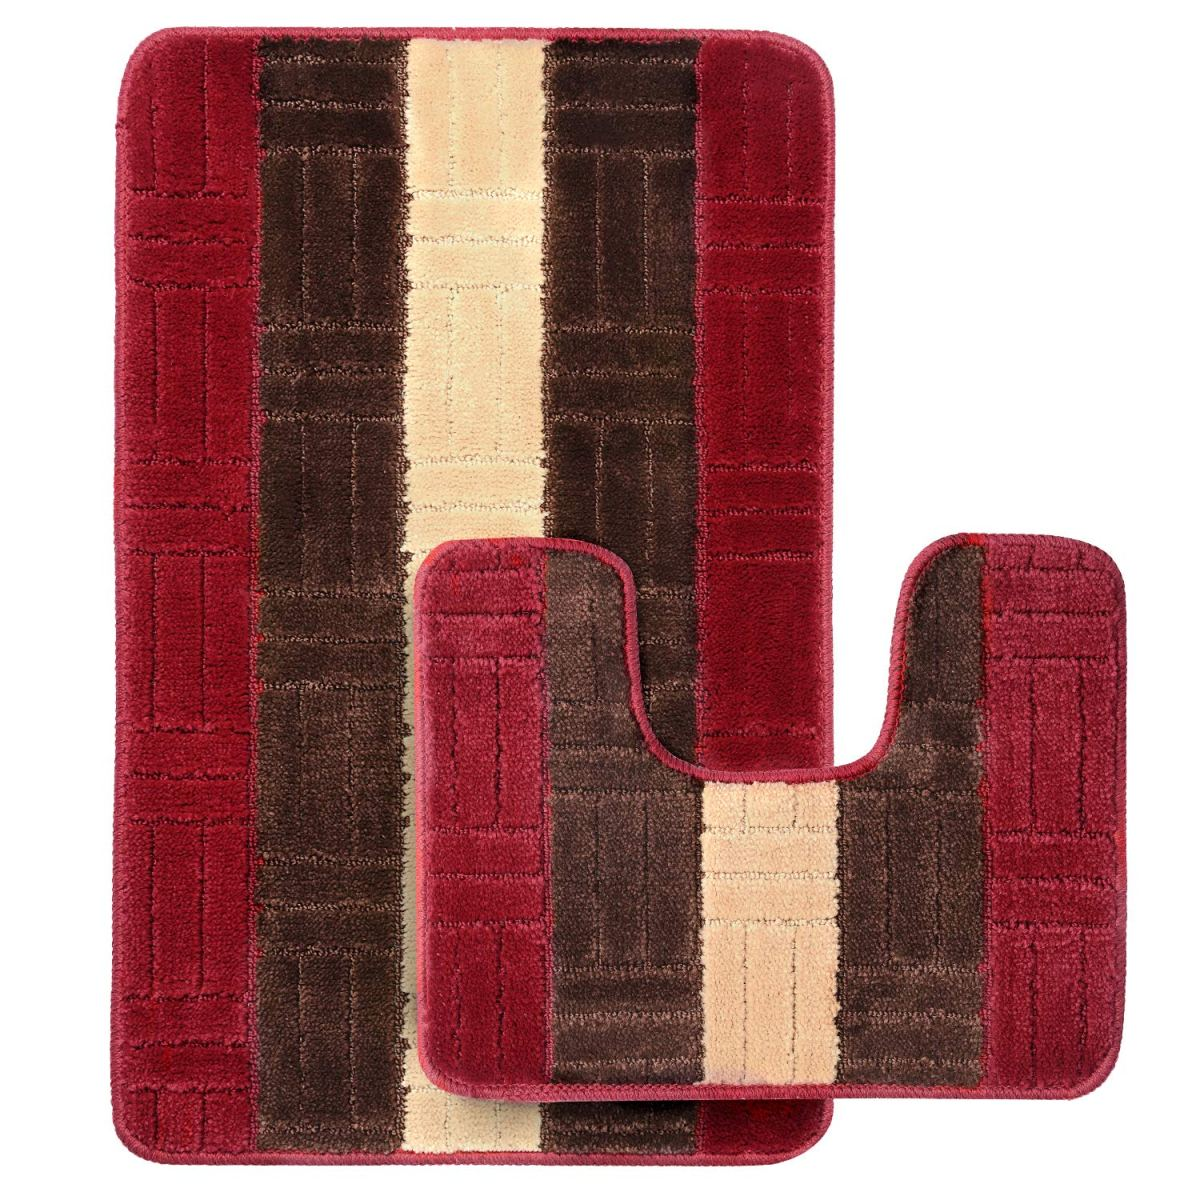 Amazon : Set Of 2 Bathroom Rug Mats Just $6.49-11.99 W/Code (Reg : $12.99-23.99) (As of 1/20/2019 6.52 PM CST)